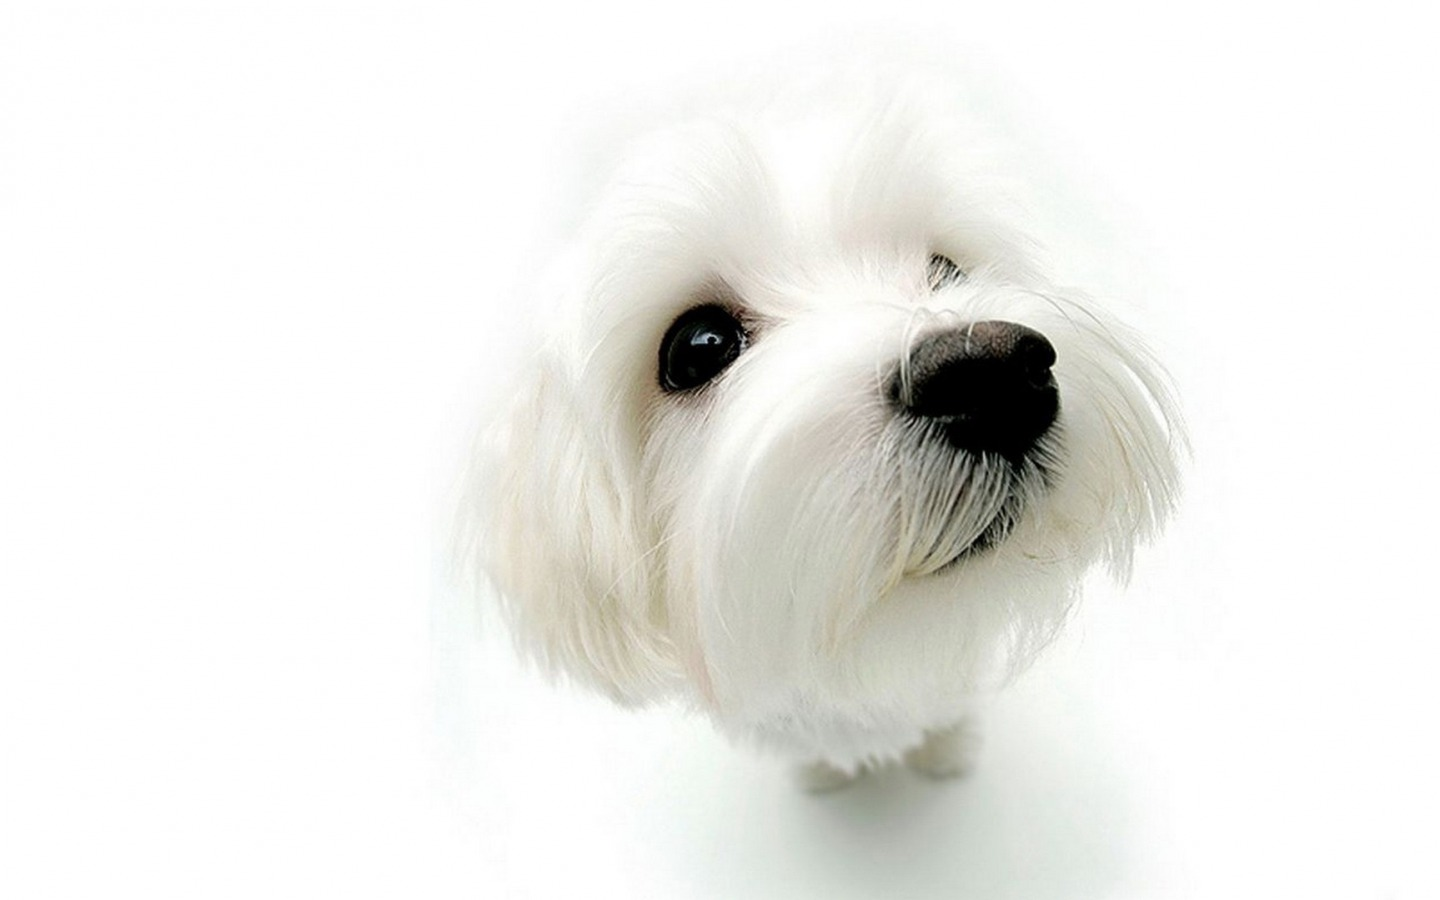 Free Download White Dogs Hd Wallpapers Page 0 High Resolution 1440x900 For Your Desktop Mobile Tablet Explore 75 White Dog Wallpaper Black And White Dog Wallpaper